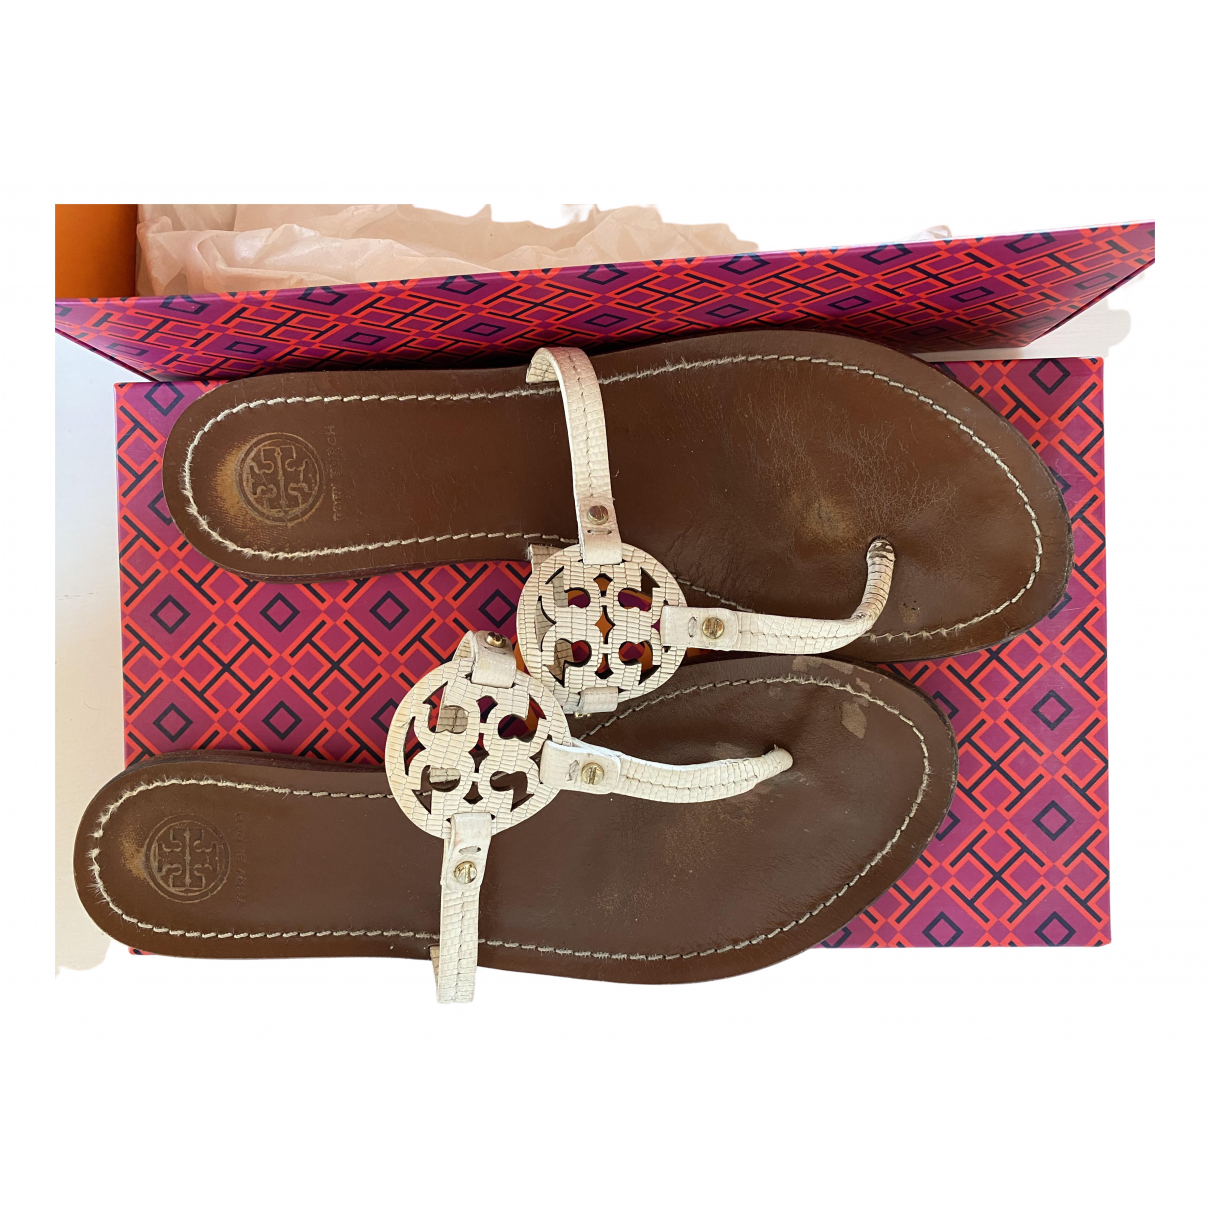 Tory Burch \N White Leather Sandals for Women 8.5 US